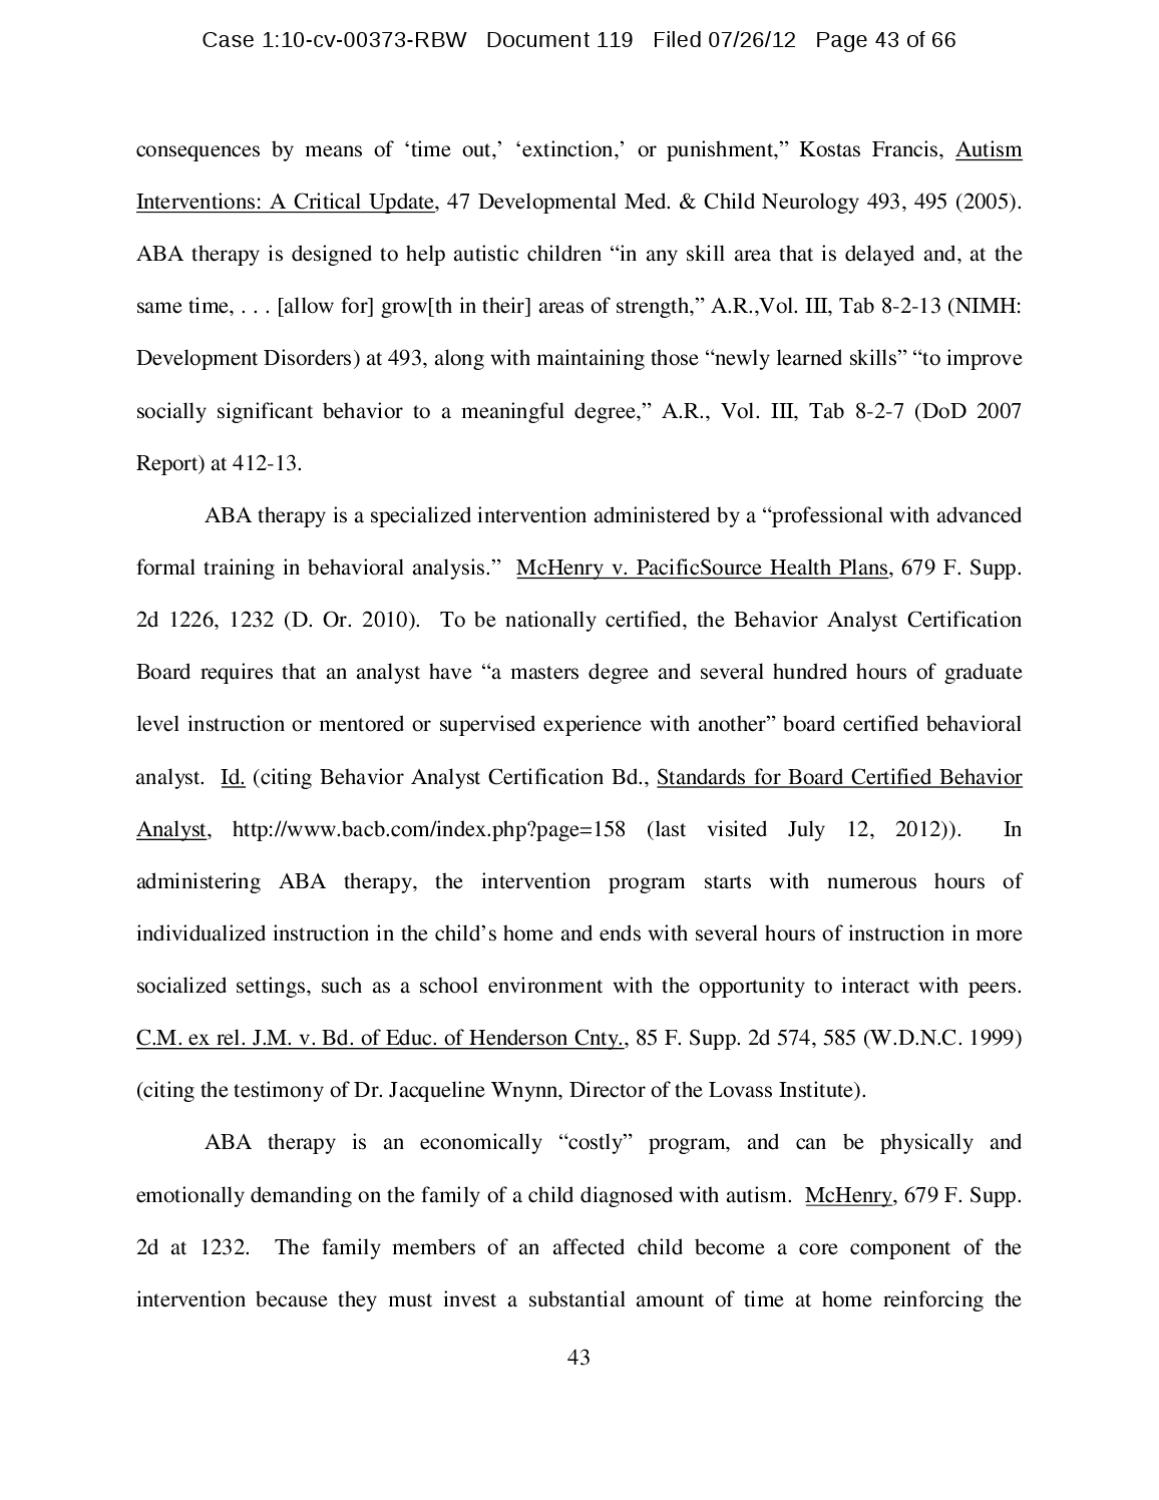 Military Autism Aba Class Action Lawsuit Decision By Squid 1125 Issuu